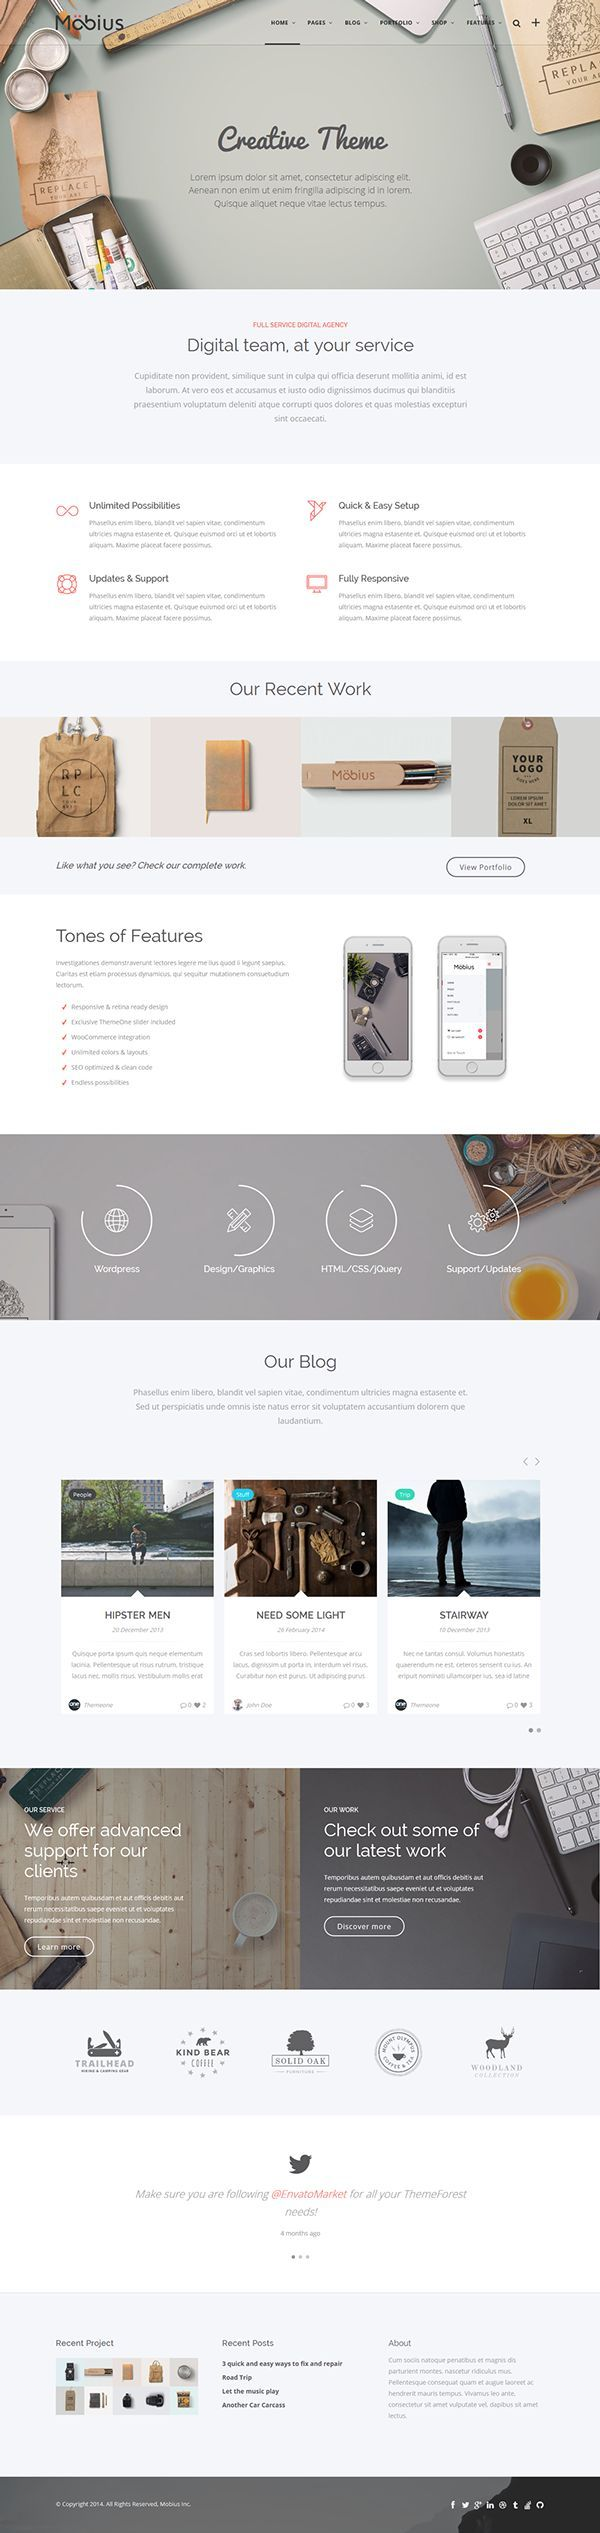 Mobius - Responsive Multi-Purpose WordPress Theme by Theme-One #wordpress #website #webdesign #themeforest